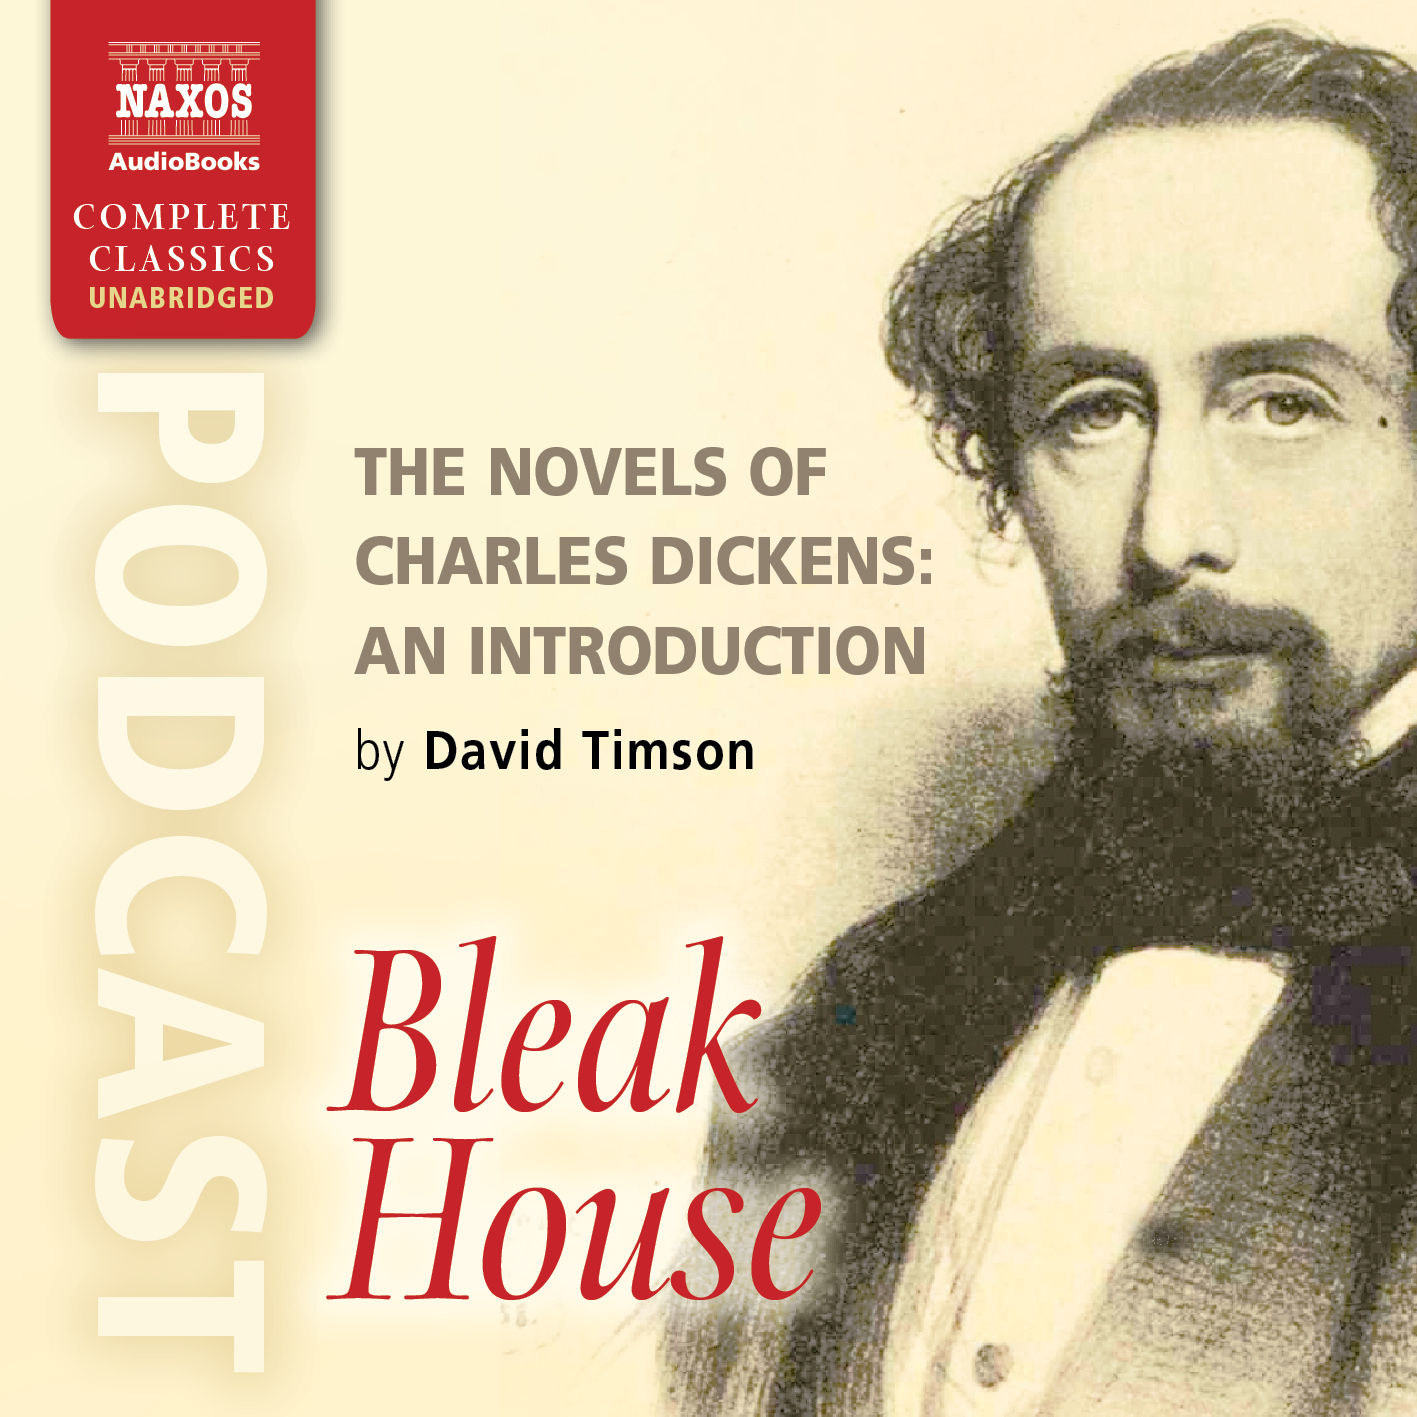 https://naxosaudiobooks.com/wp-content/uploads/2019/08/NA0386_Bleak_House_Podcast.jpg